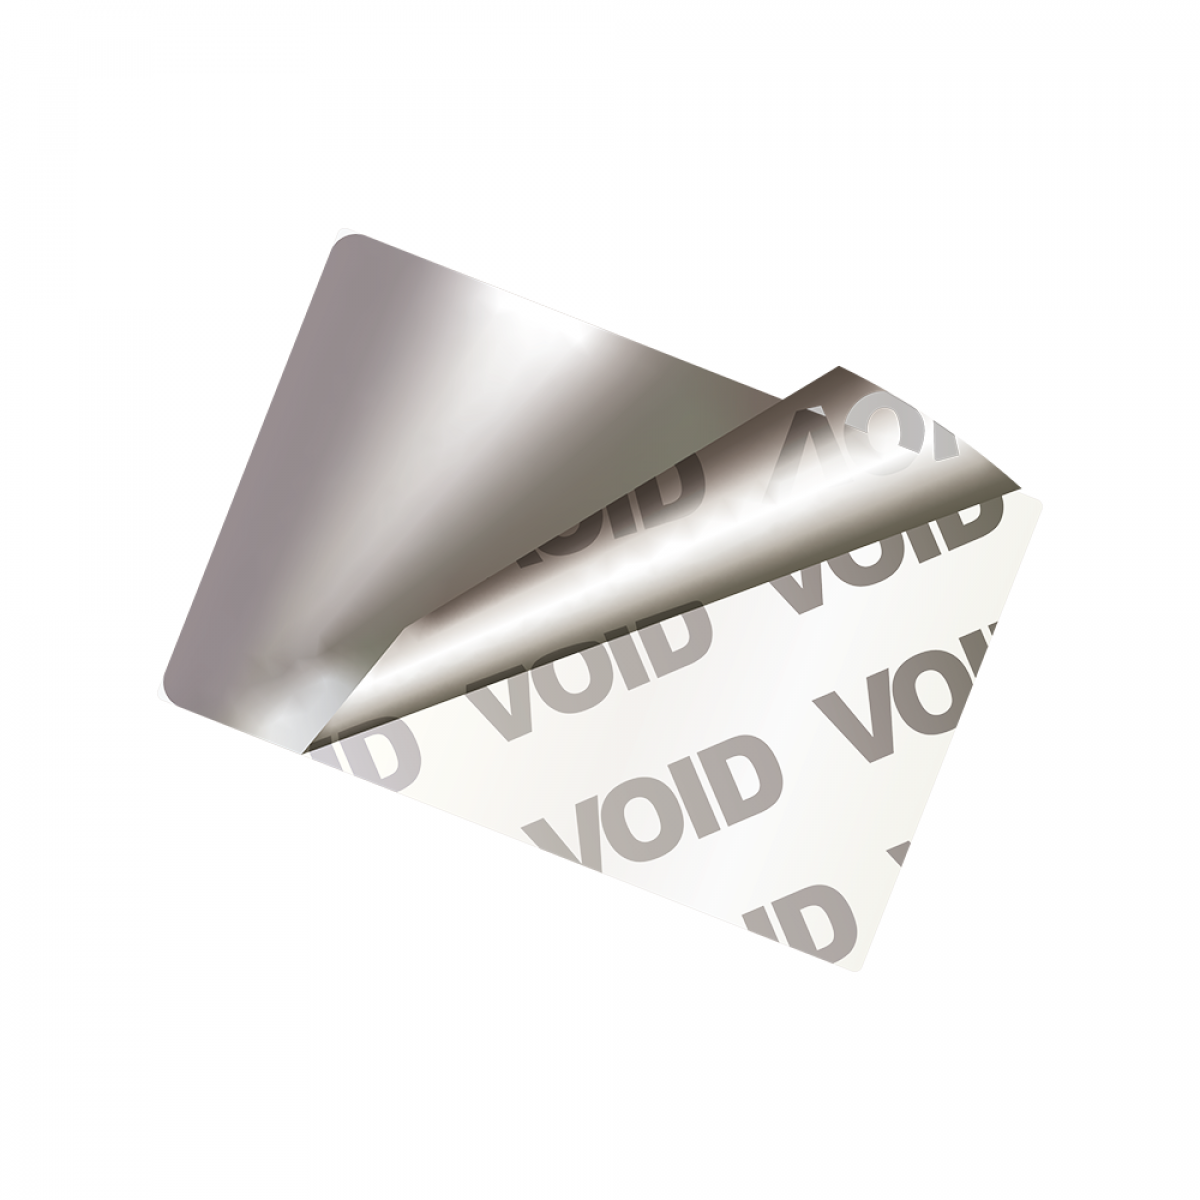 Security label with tamper evident void message